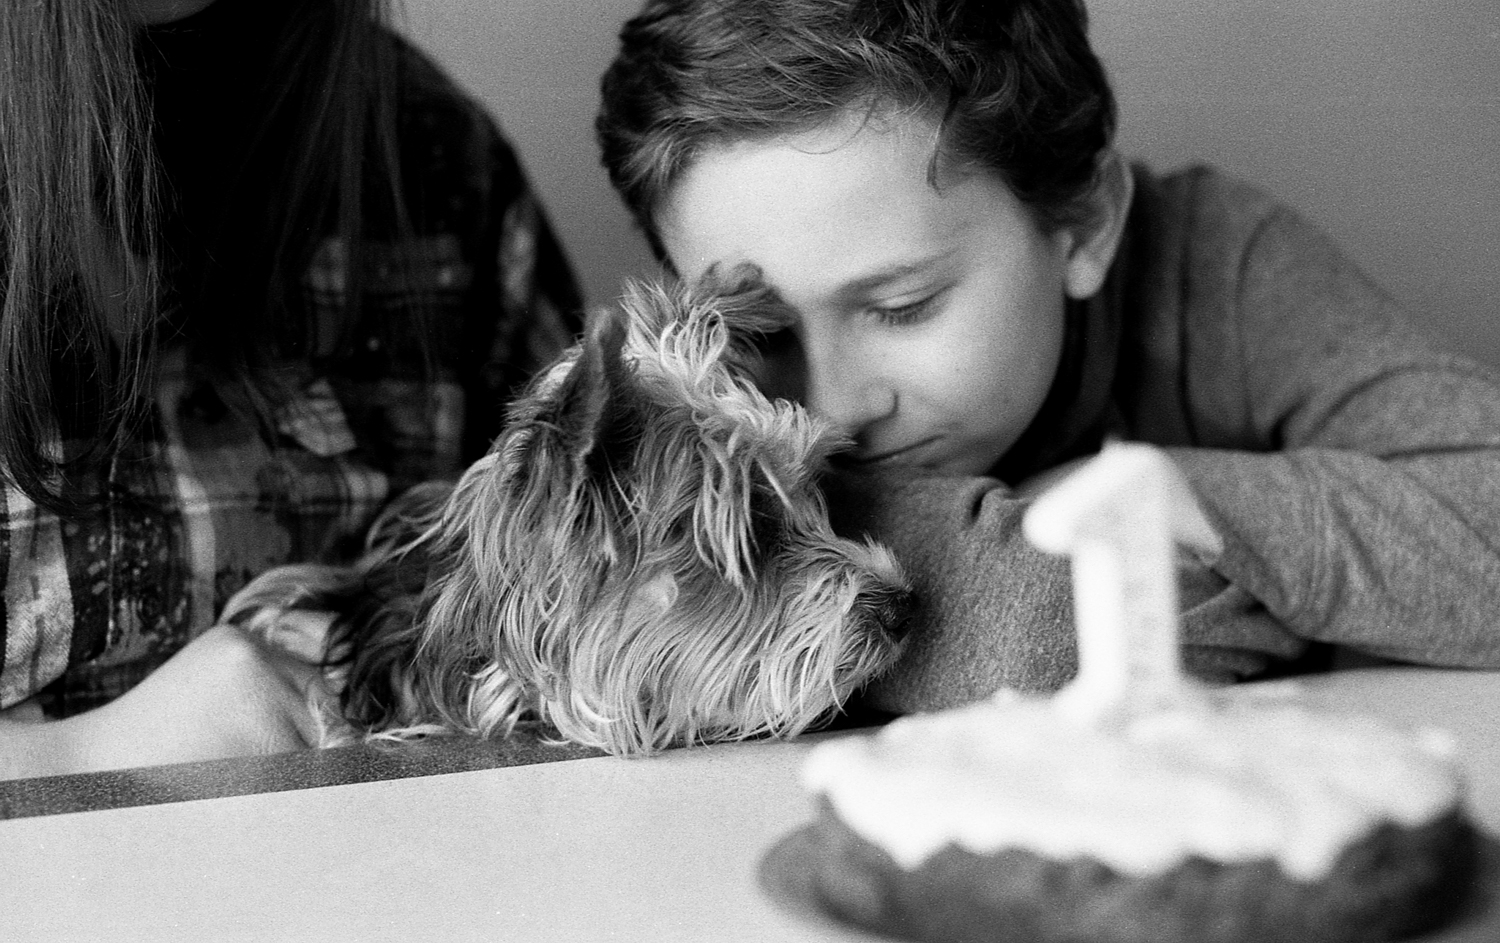 Young boy celebrating his yorkie puppies birthday.